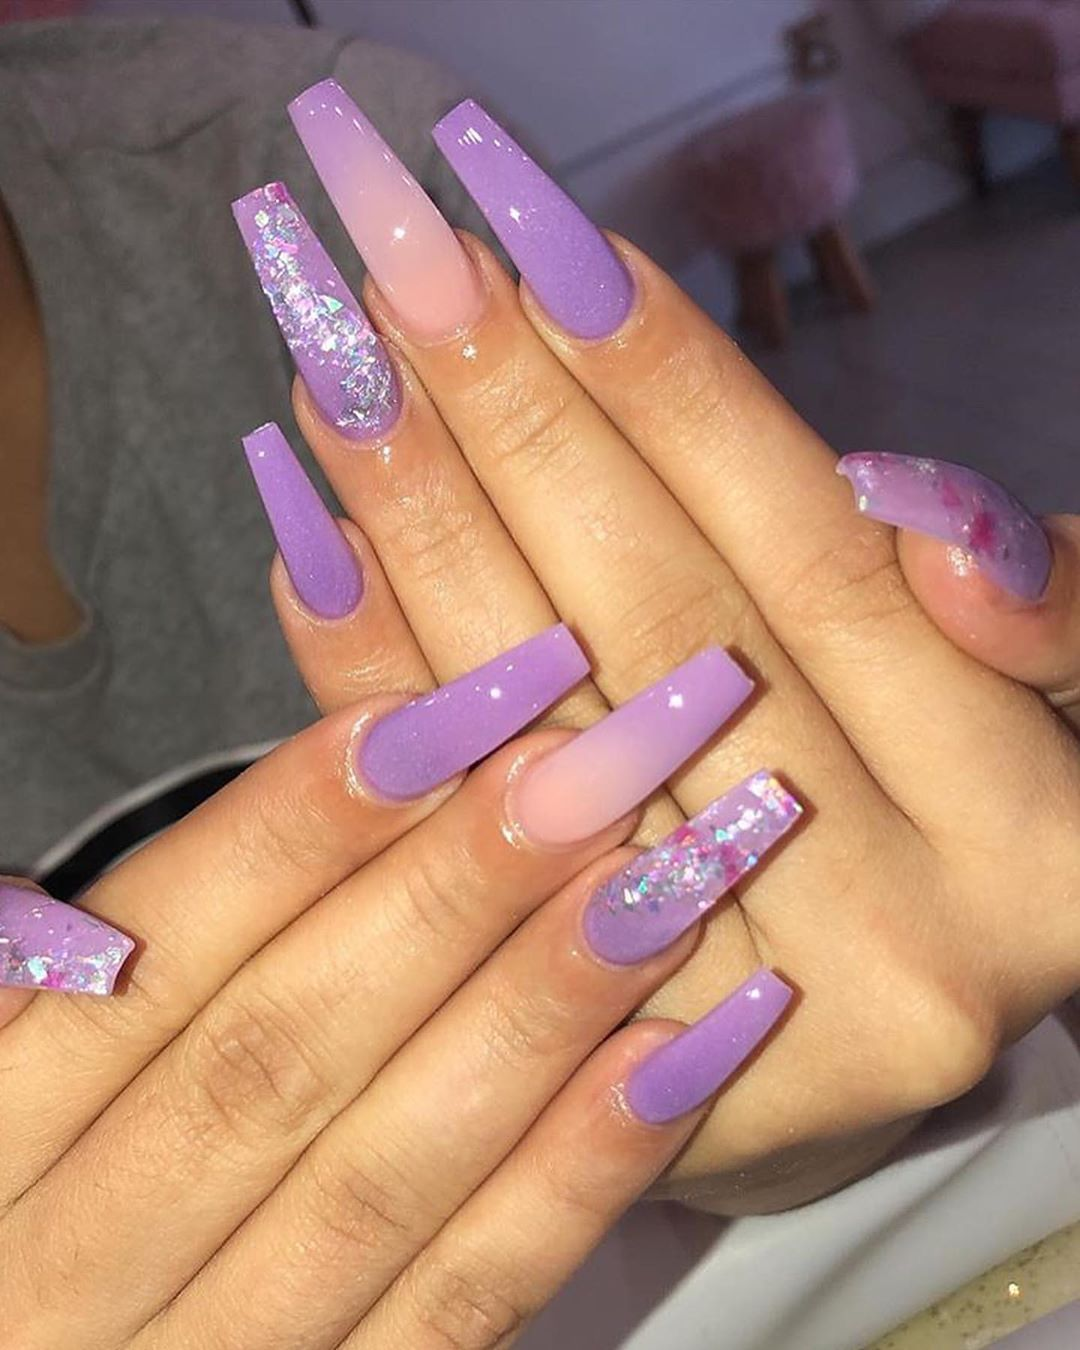 Nail Salon Open Till 8 Near Me In San Jose Check More At Http Connollysdigital Net Nail Salon Near Me Nail Acrylic Nails Price Nail Prices Acrylic Nail Salon